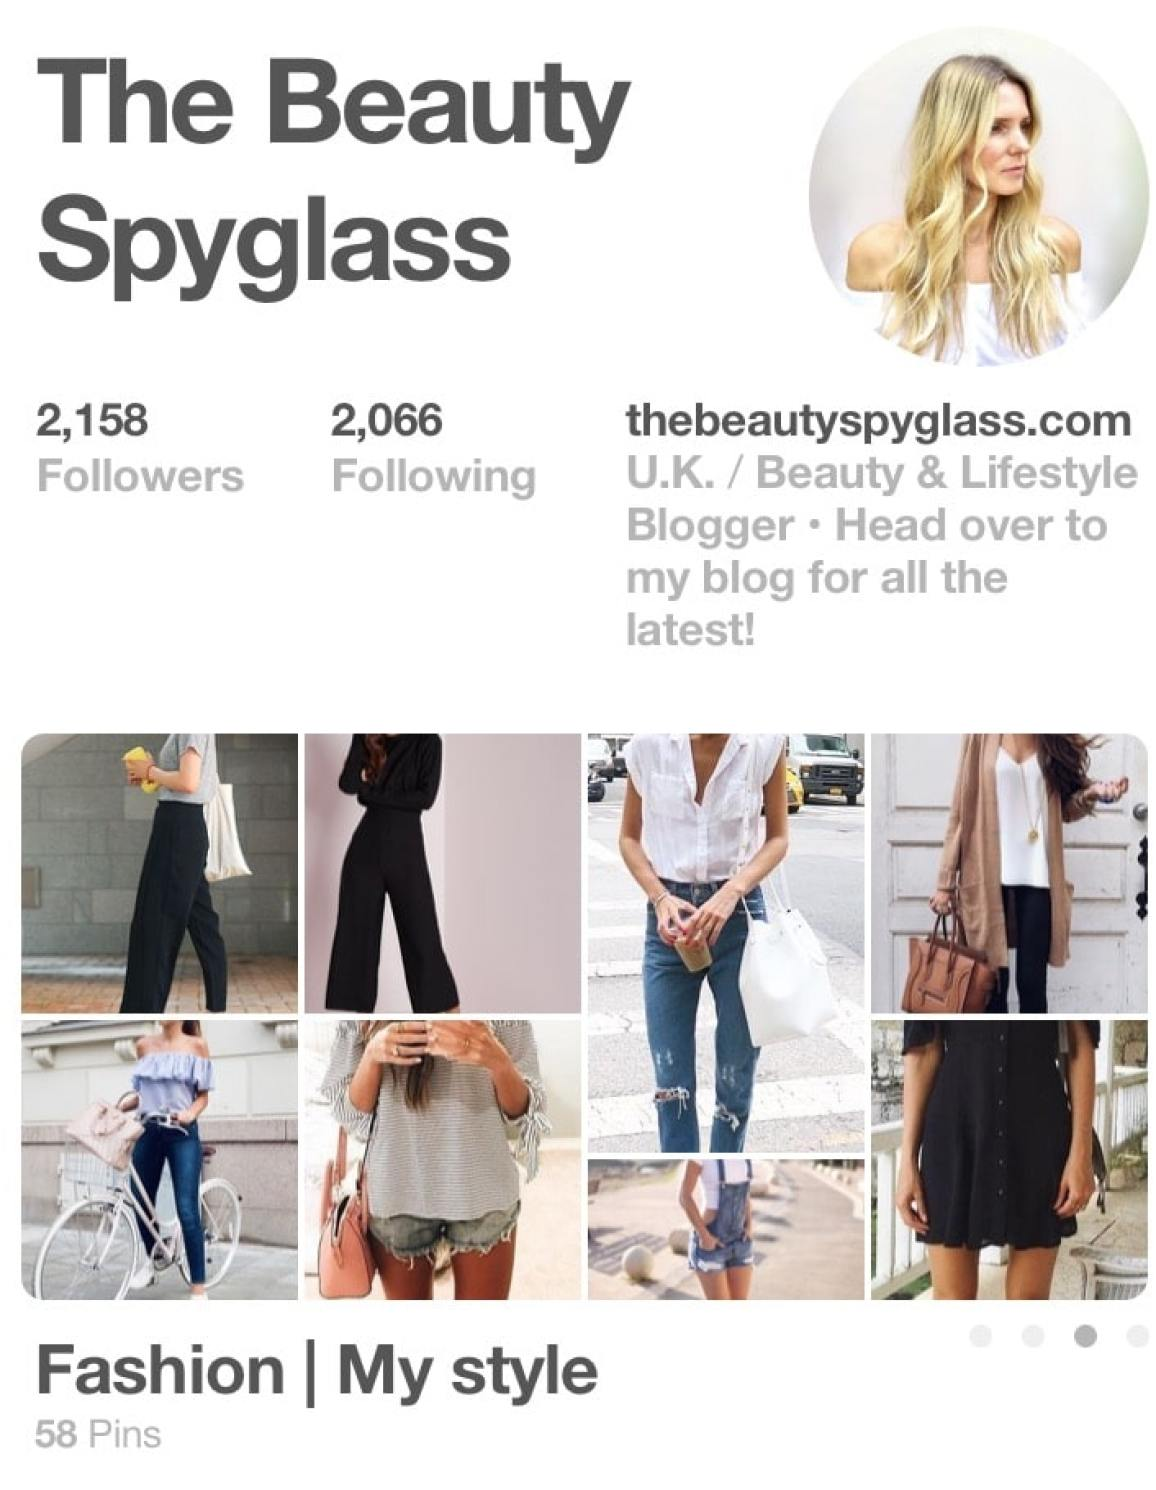 Image shows a snapshot of my Pinterest page.